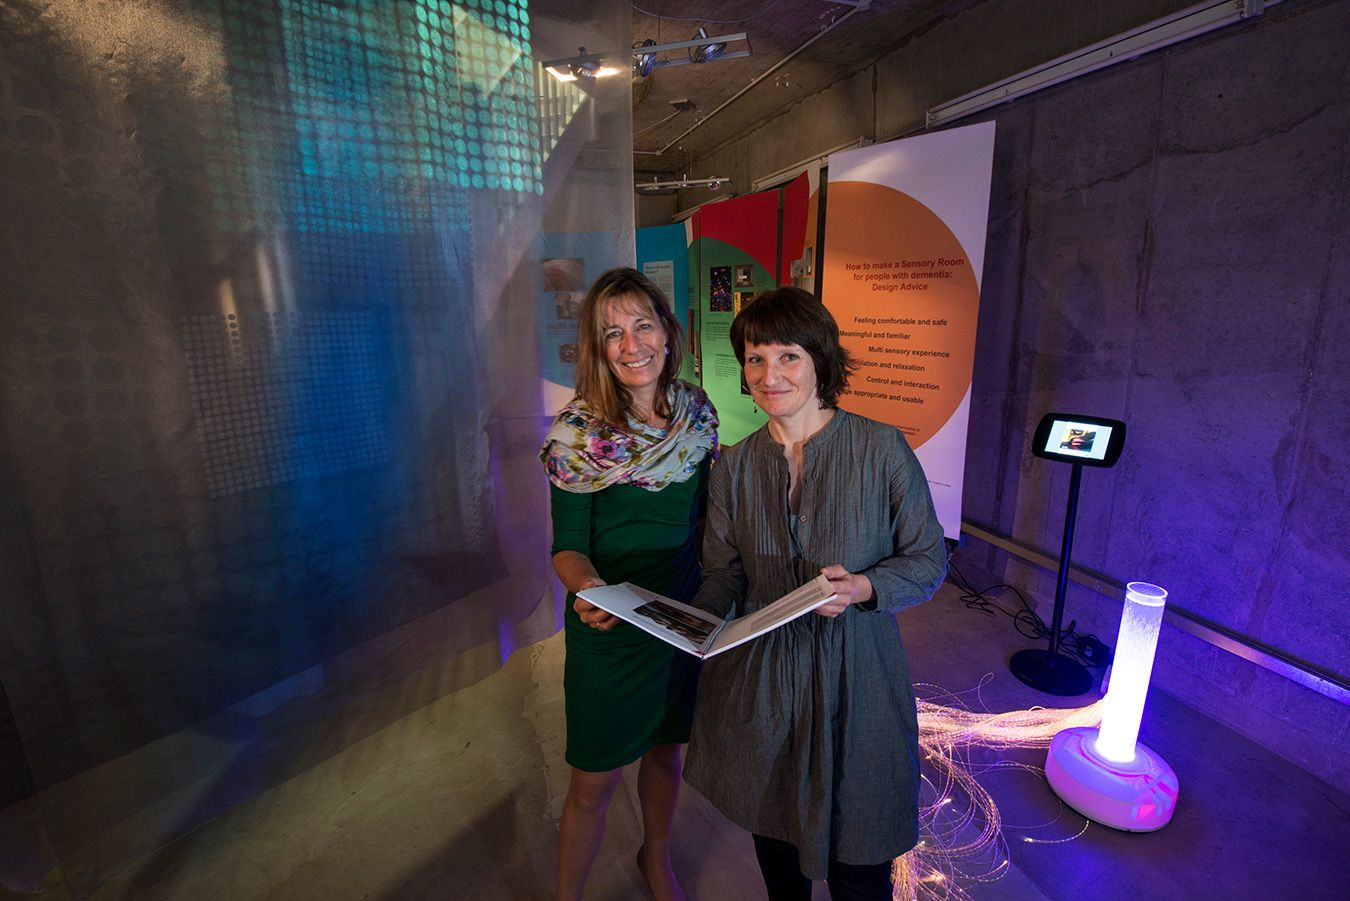 Drs Lesley Collier, left, and Anke Jakob shared their specialist knowledge with visitors to the Sensory Rooms exhibition staged as part of the Inside Out Festival. Image - University of Southampton